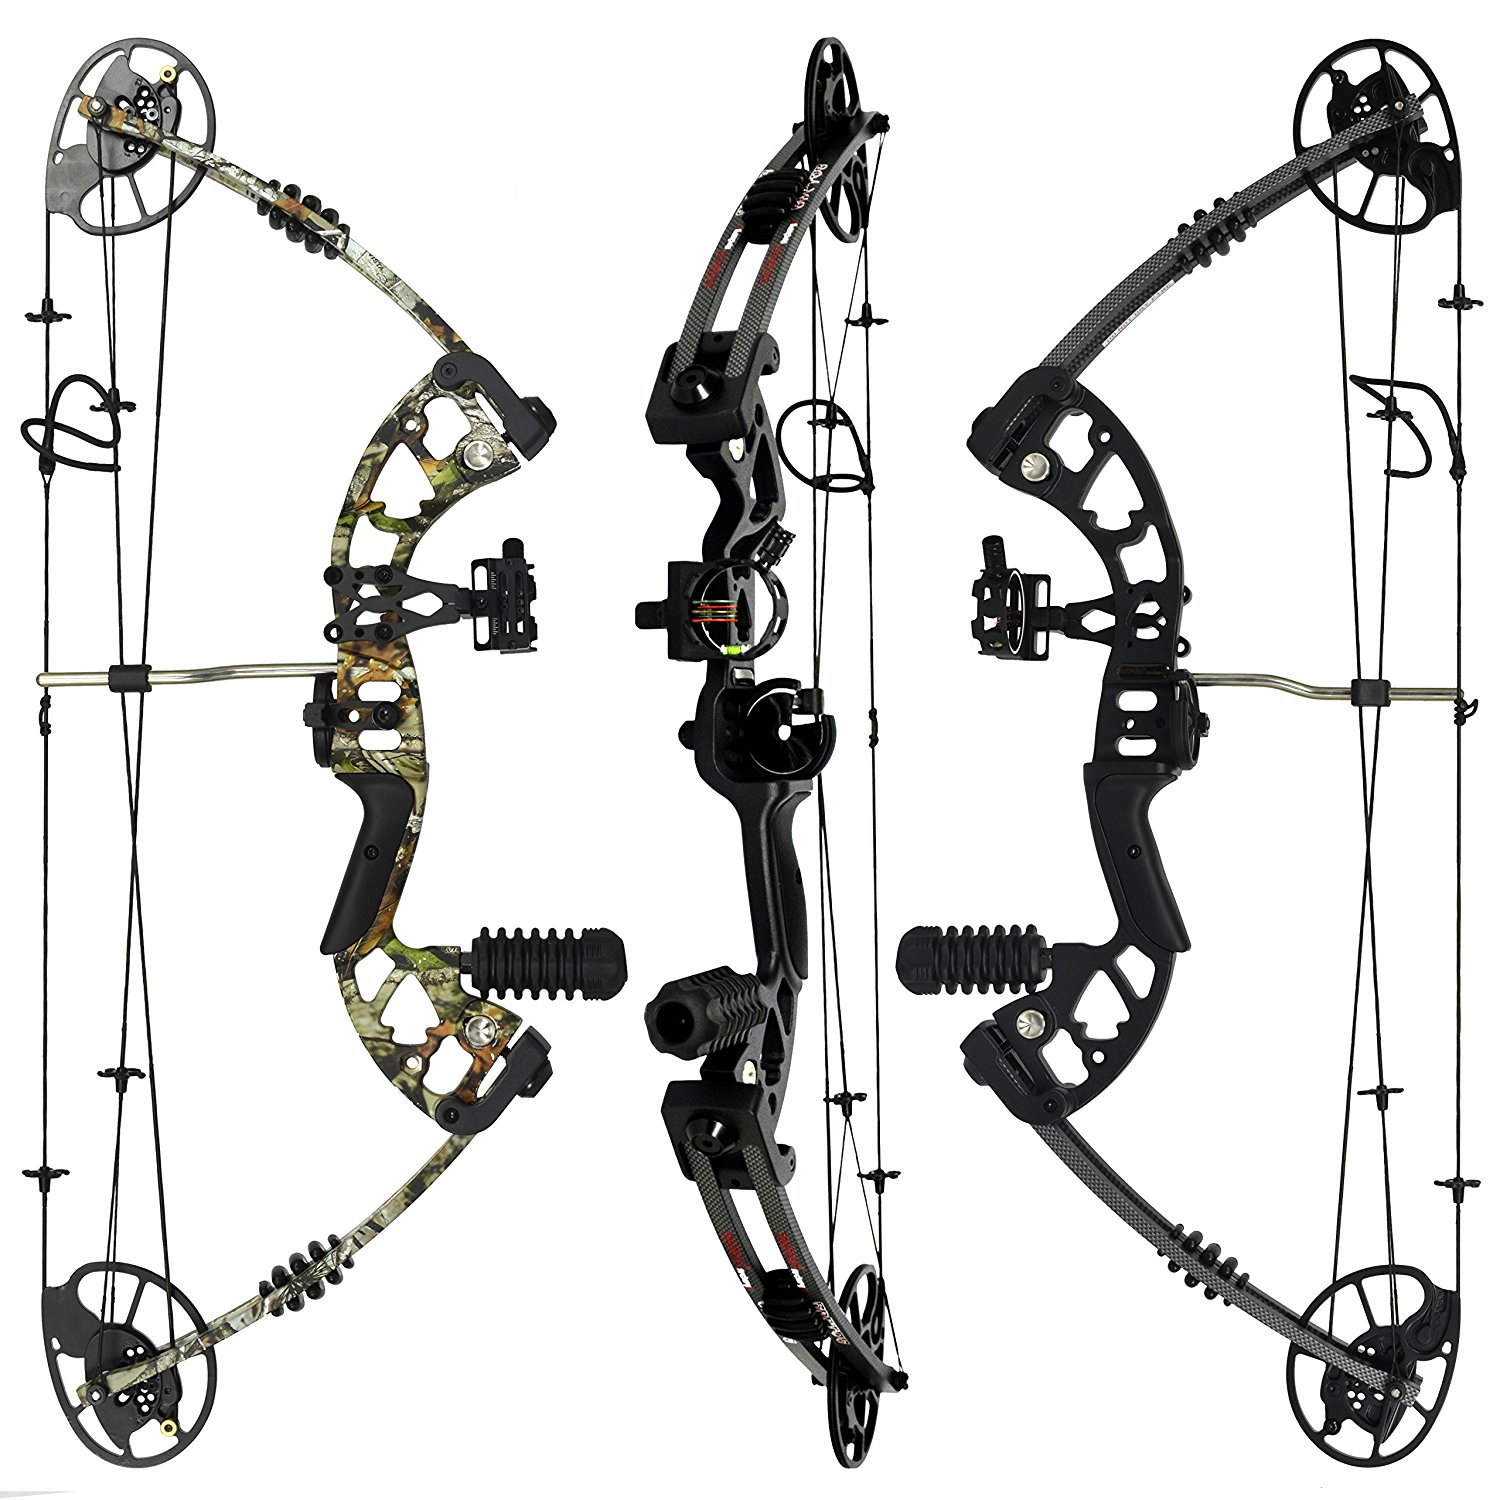 1500x1500 Raptor Compound Bow And Arrow Kit Fully Adjustable 24.5 31 Draw